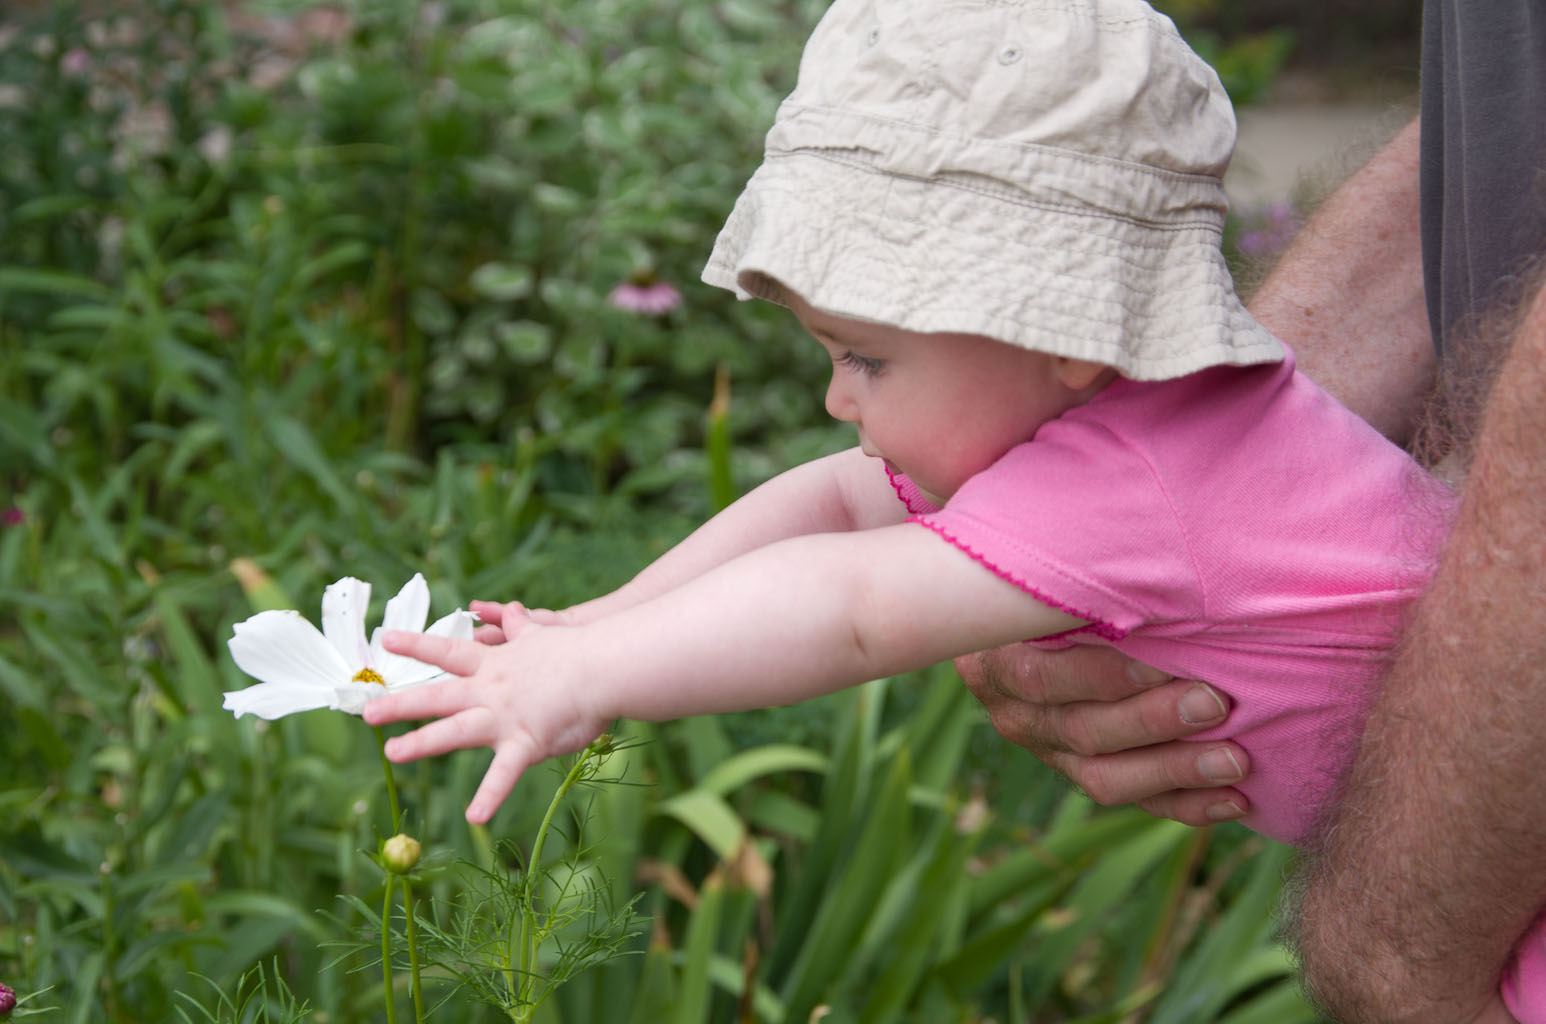 Photo of Baby A grabbing for a white Daisy by Elizabeth Powis Fulks.